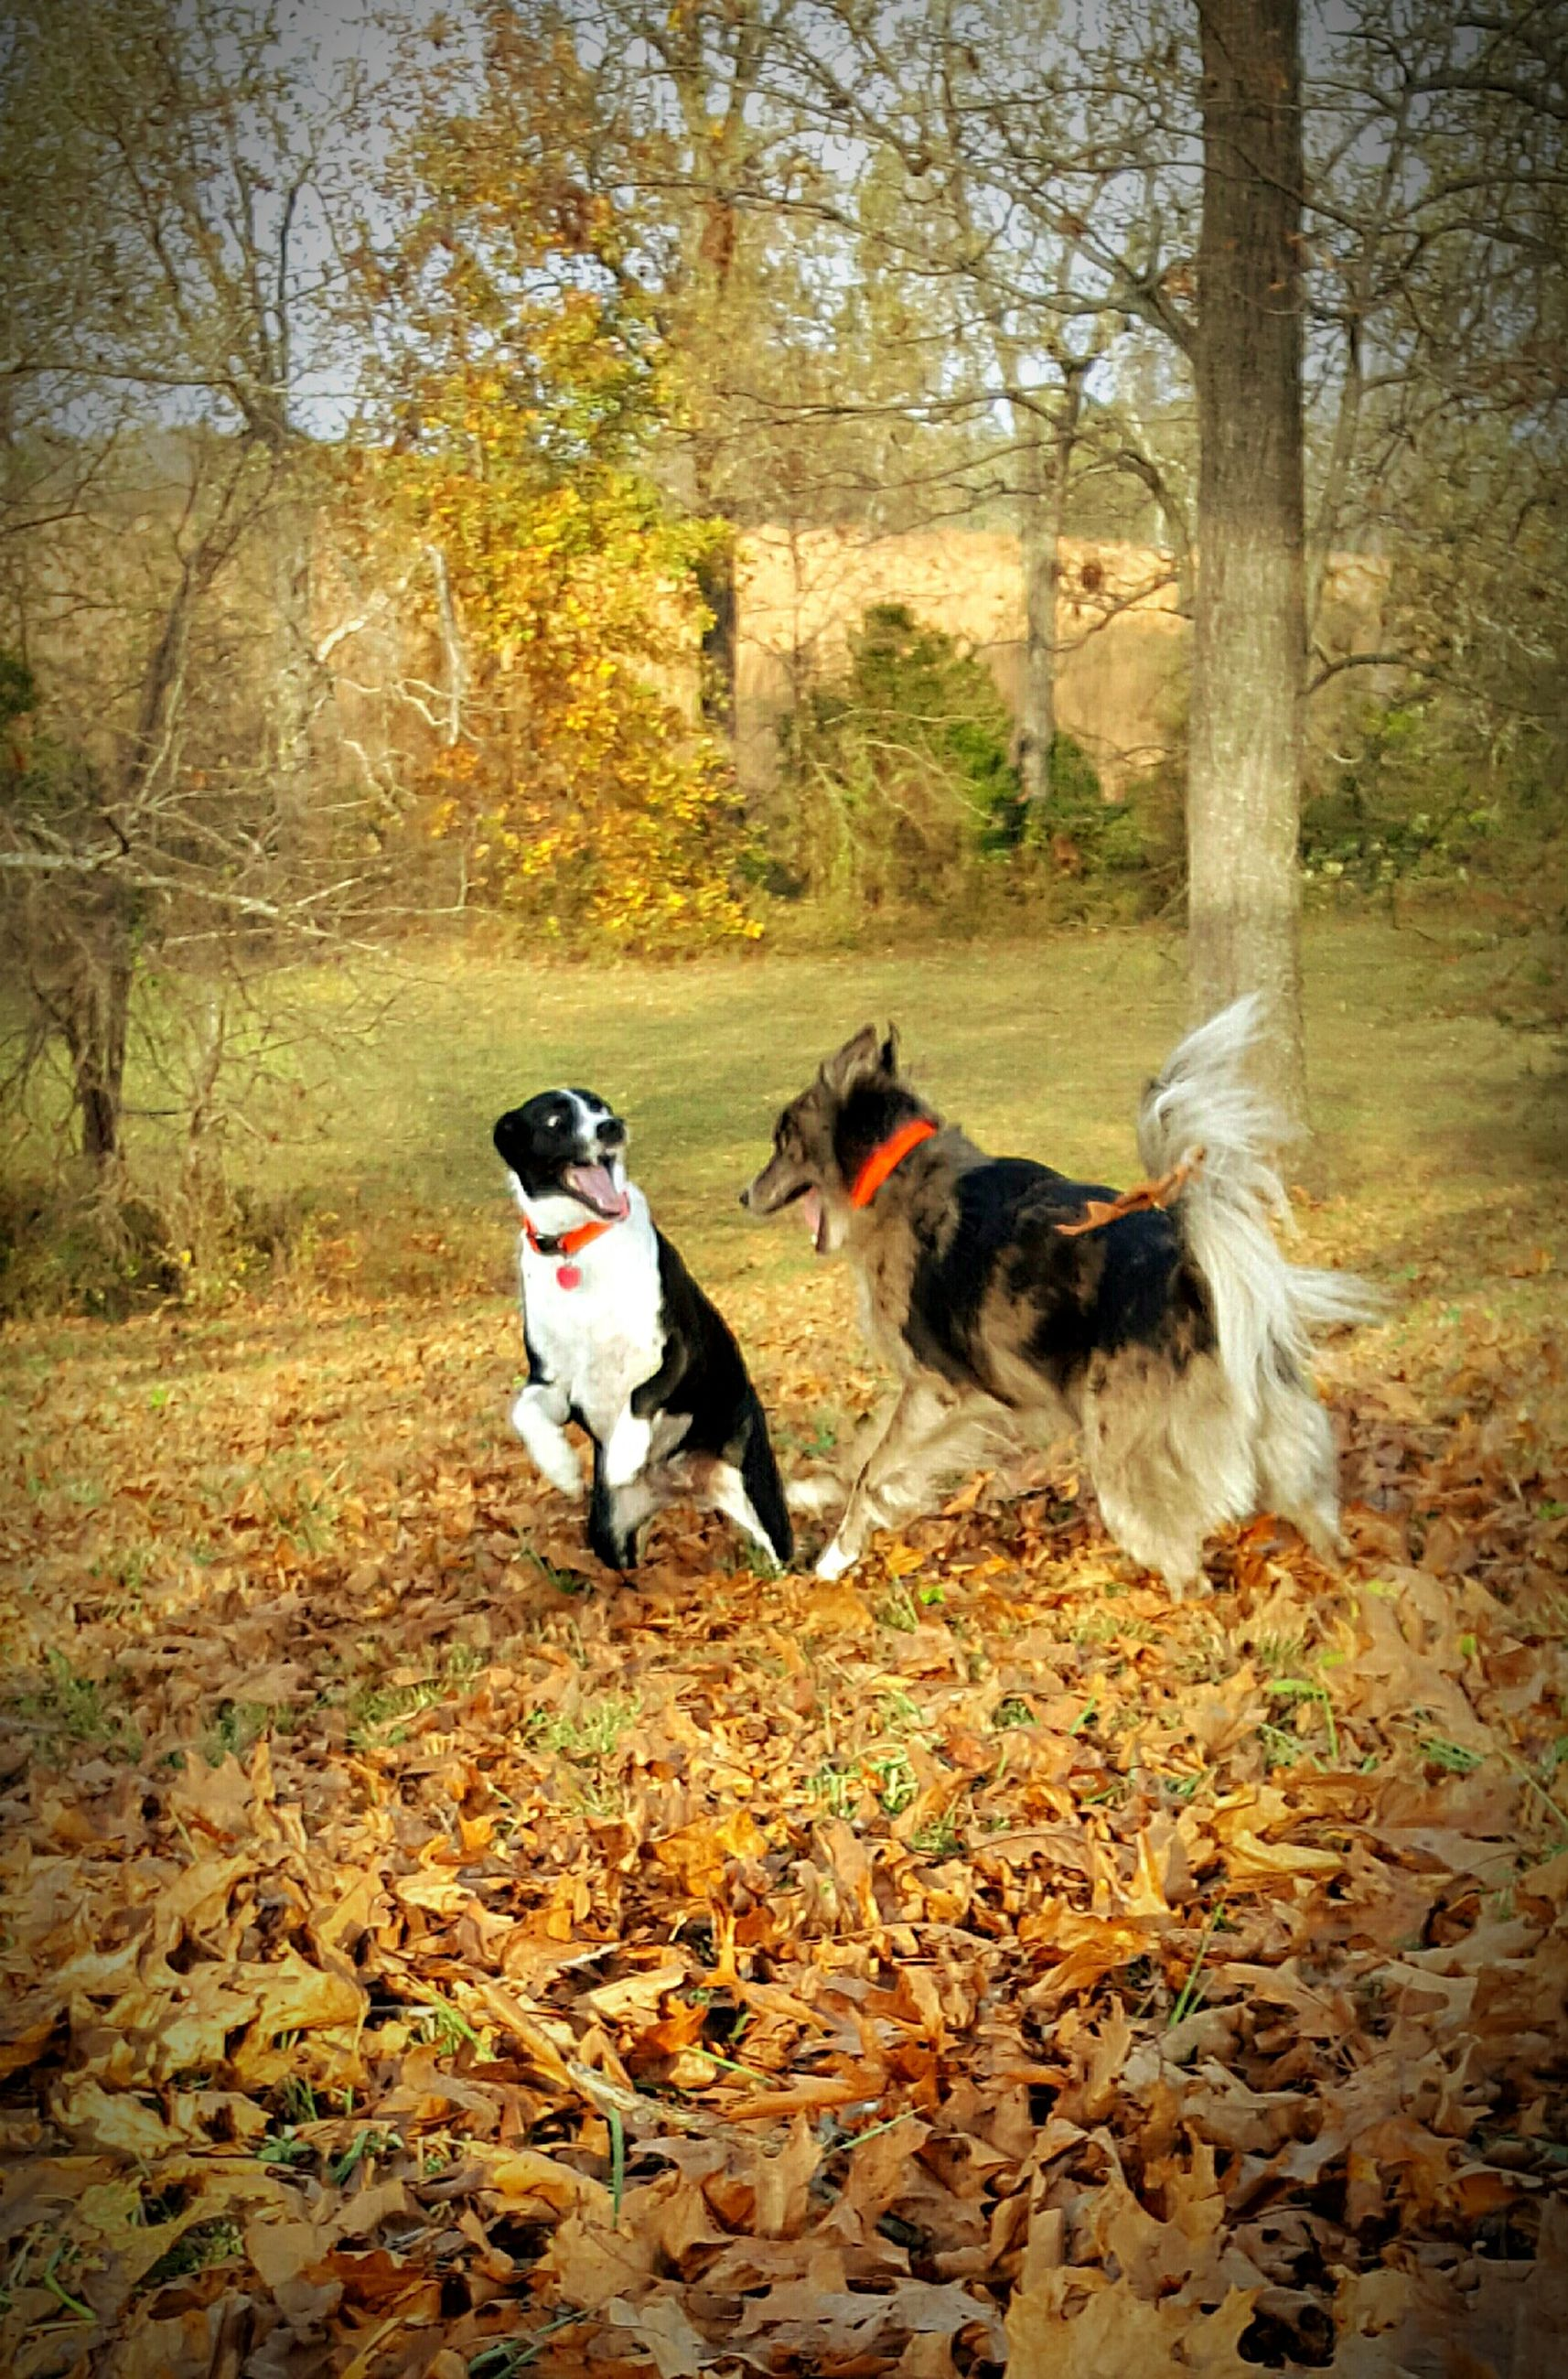 pets, dog, domestic animals, animal themes, nature, tree, no people, mammal, outdoors, togetherness, day, beauty in nature, border collie, pet clothing, cavalier king charles spaniel